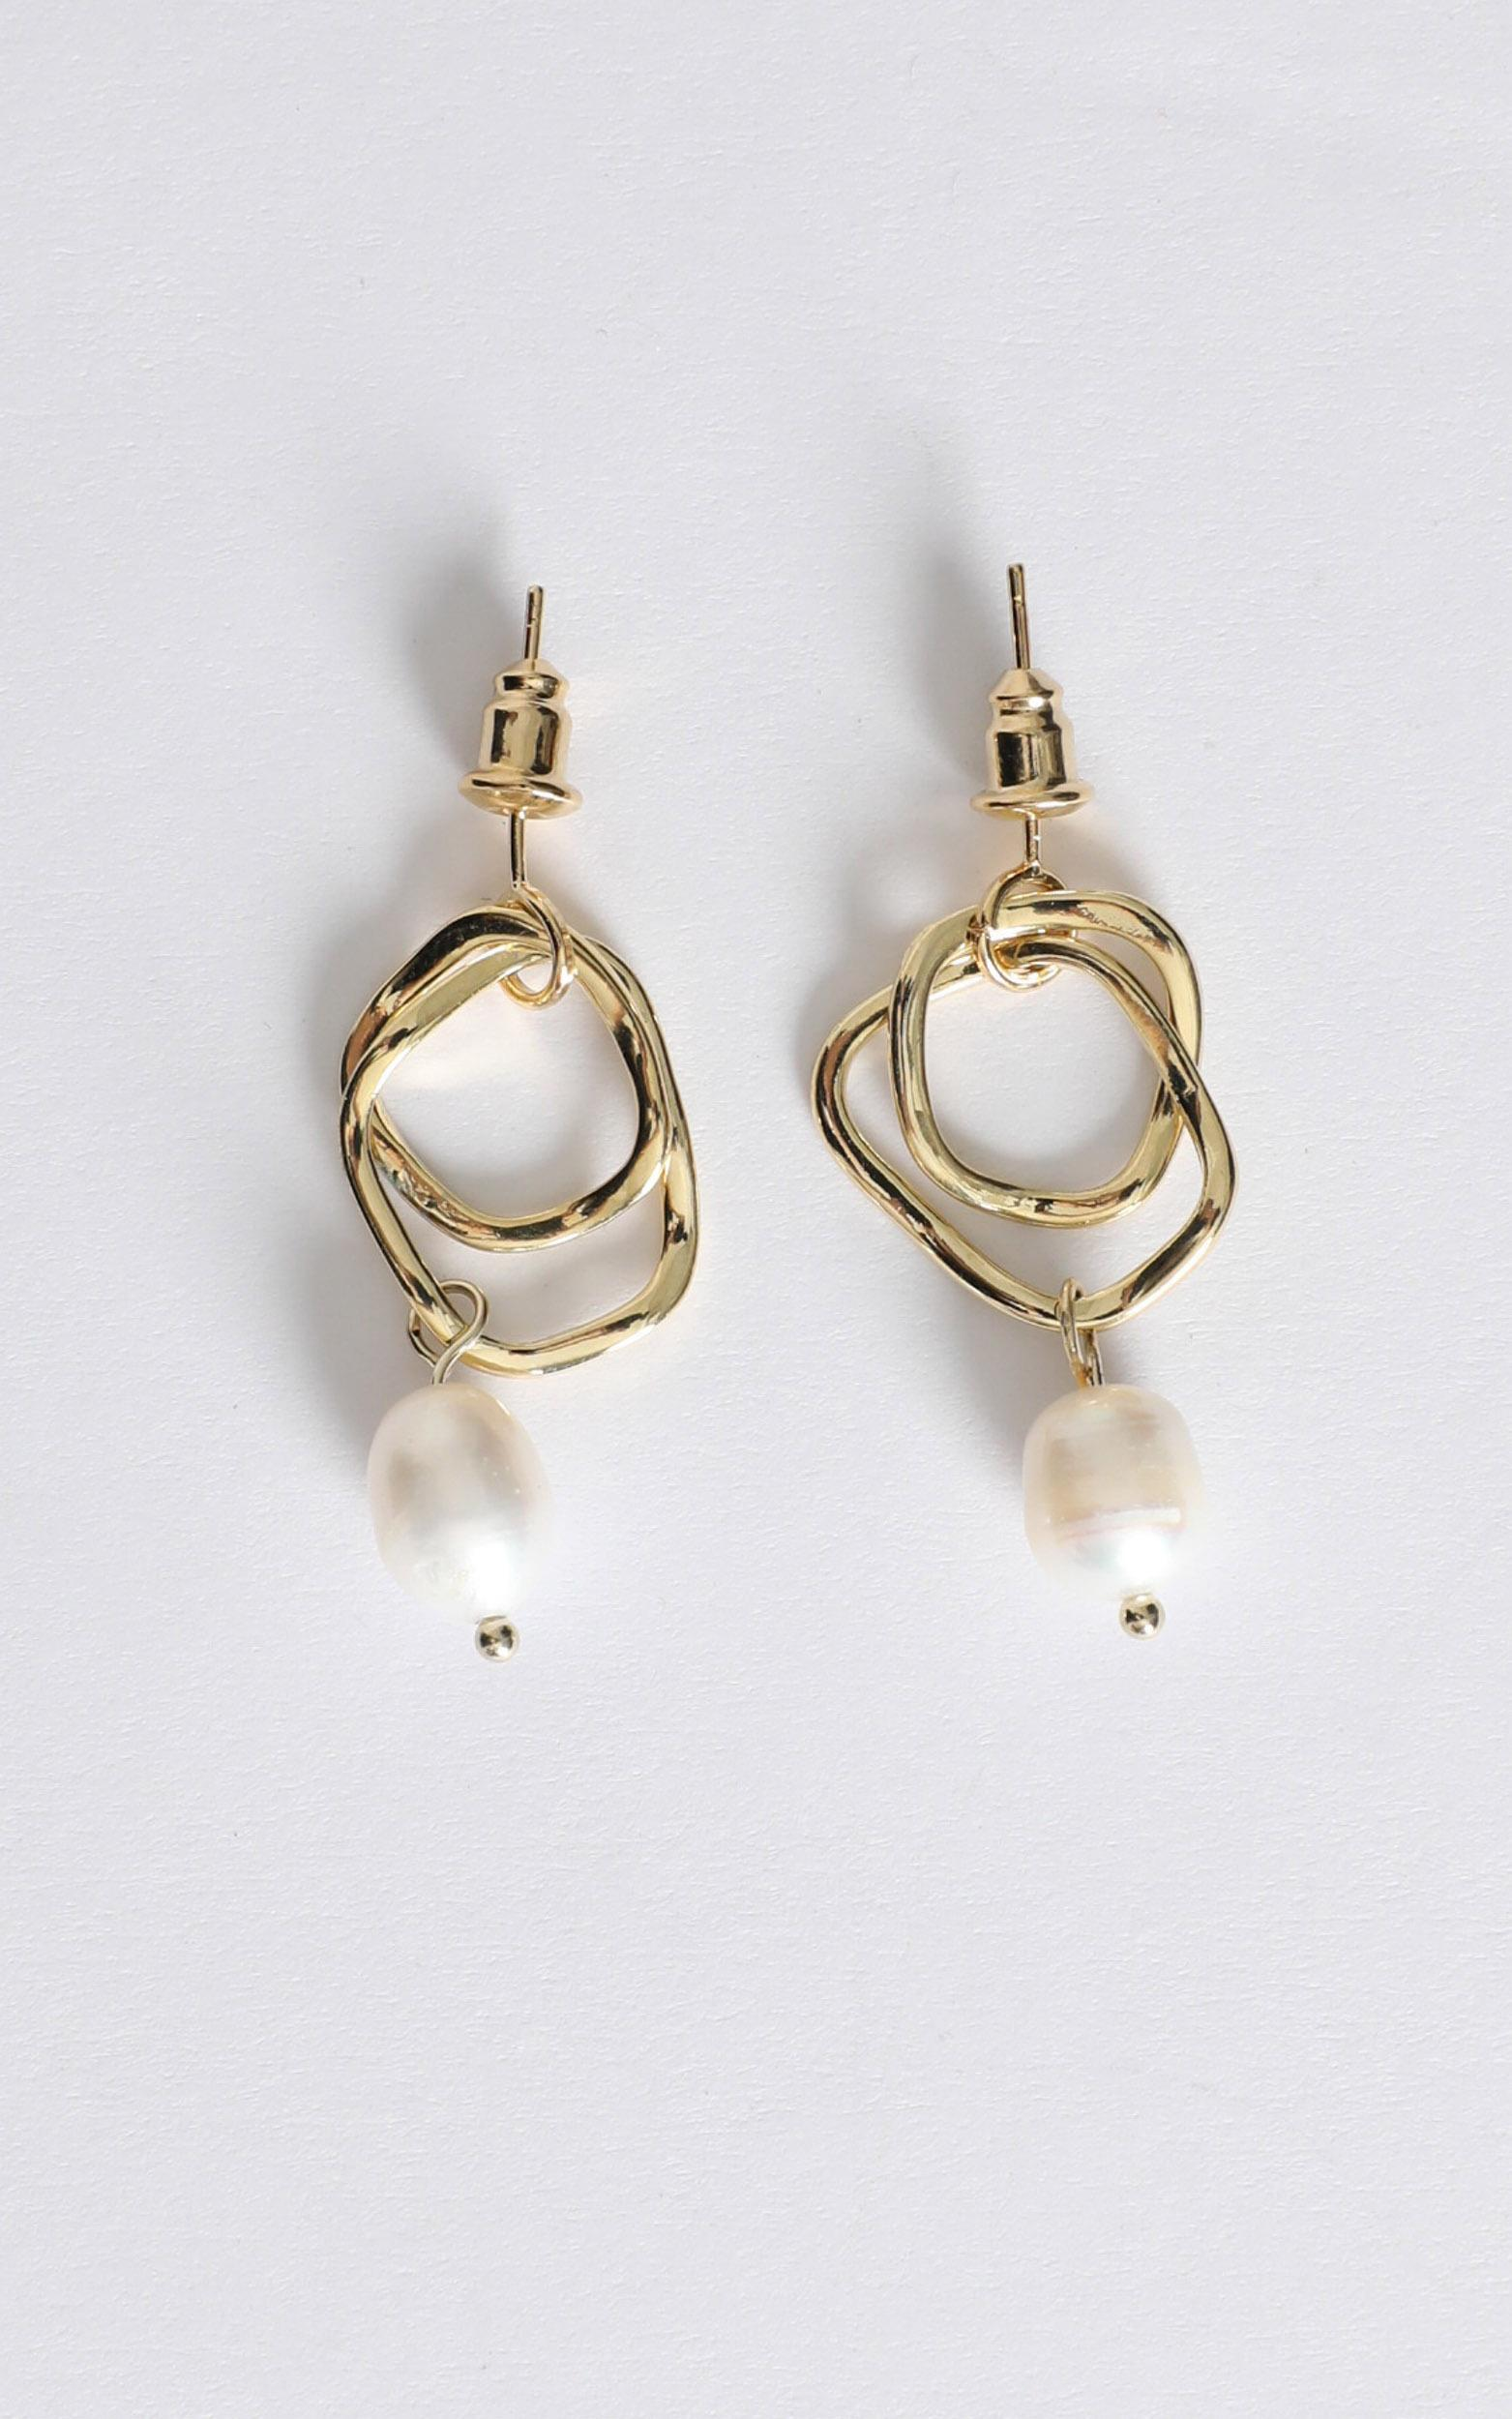 Flora Double Hoop Drop Earring in Gold And Pearl, , hi-res image number null